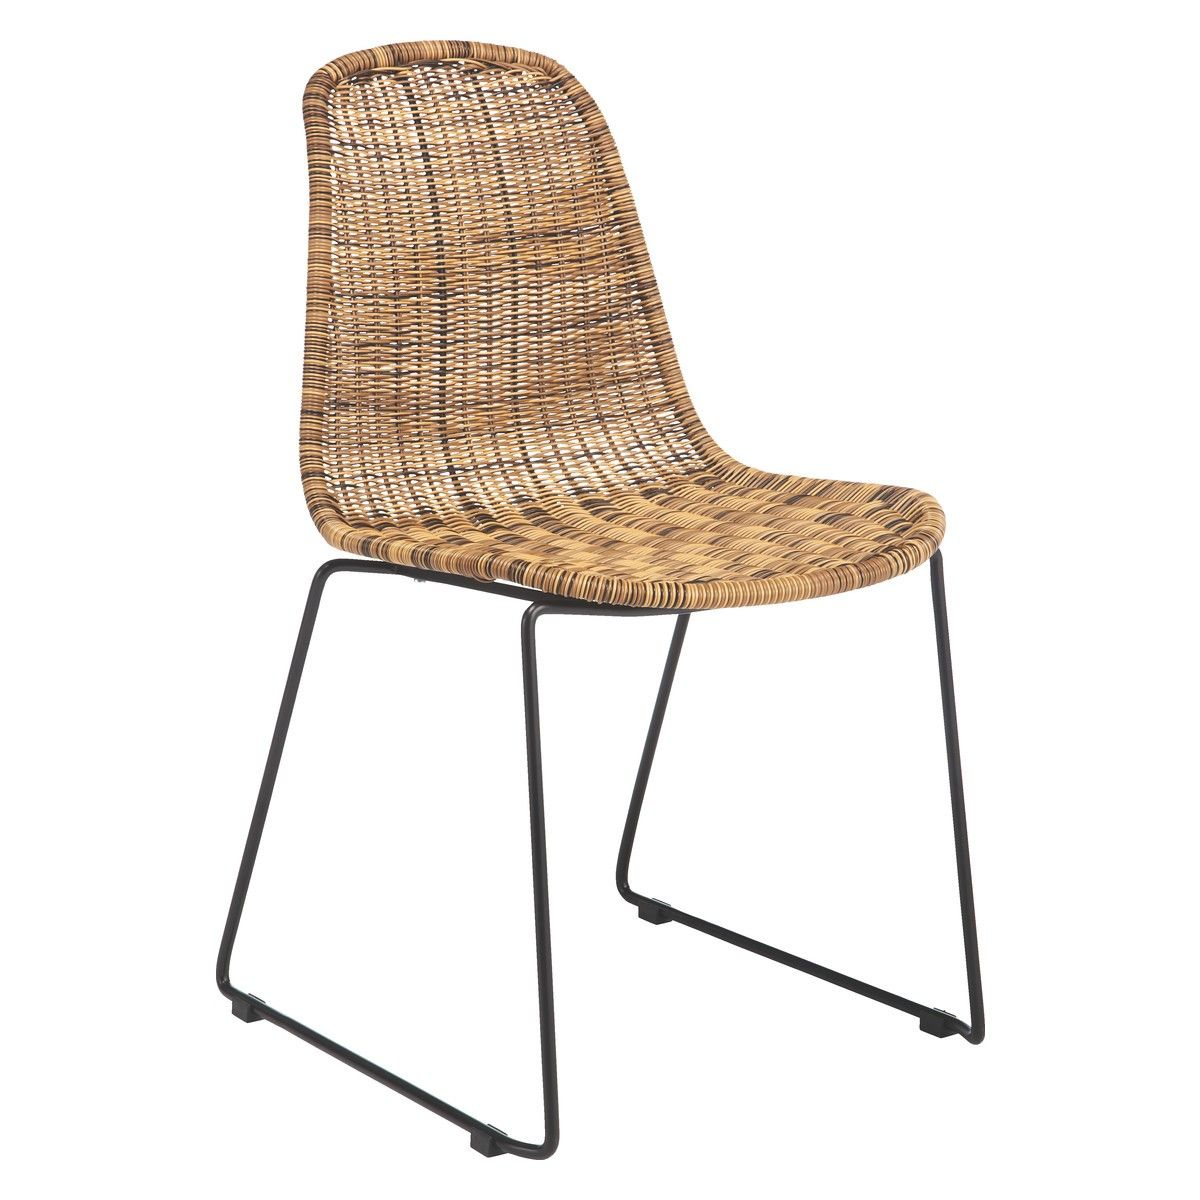 White Wicker Dining Chairs Uk Office Chair Exercises For Abs Mickey Synthetic Rattan Buy Now At Habitat